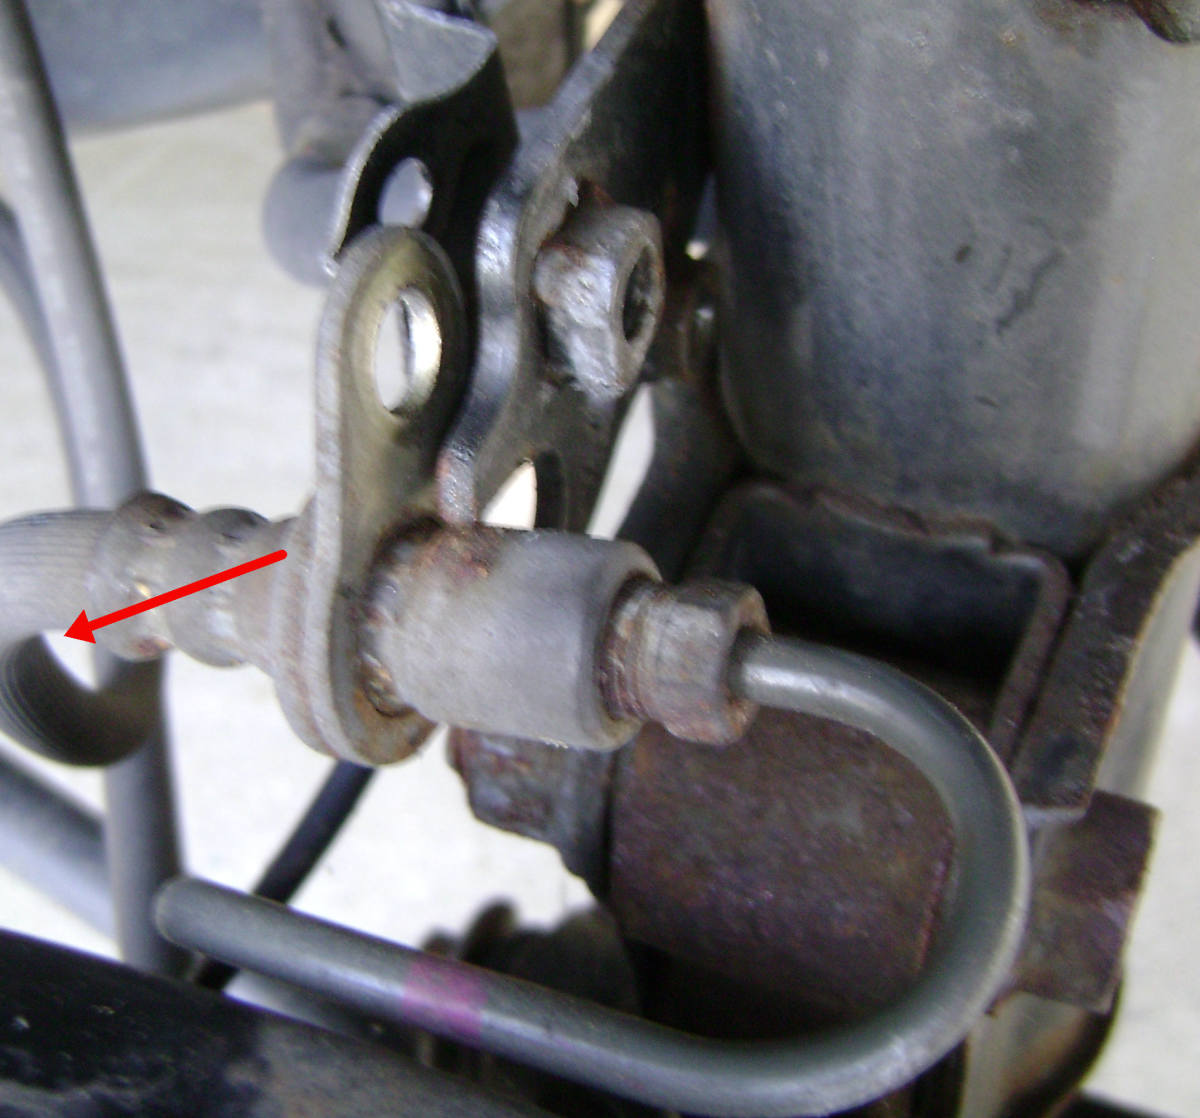 Carefully remove the brake line hose from the strut assembly